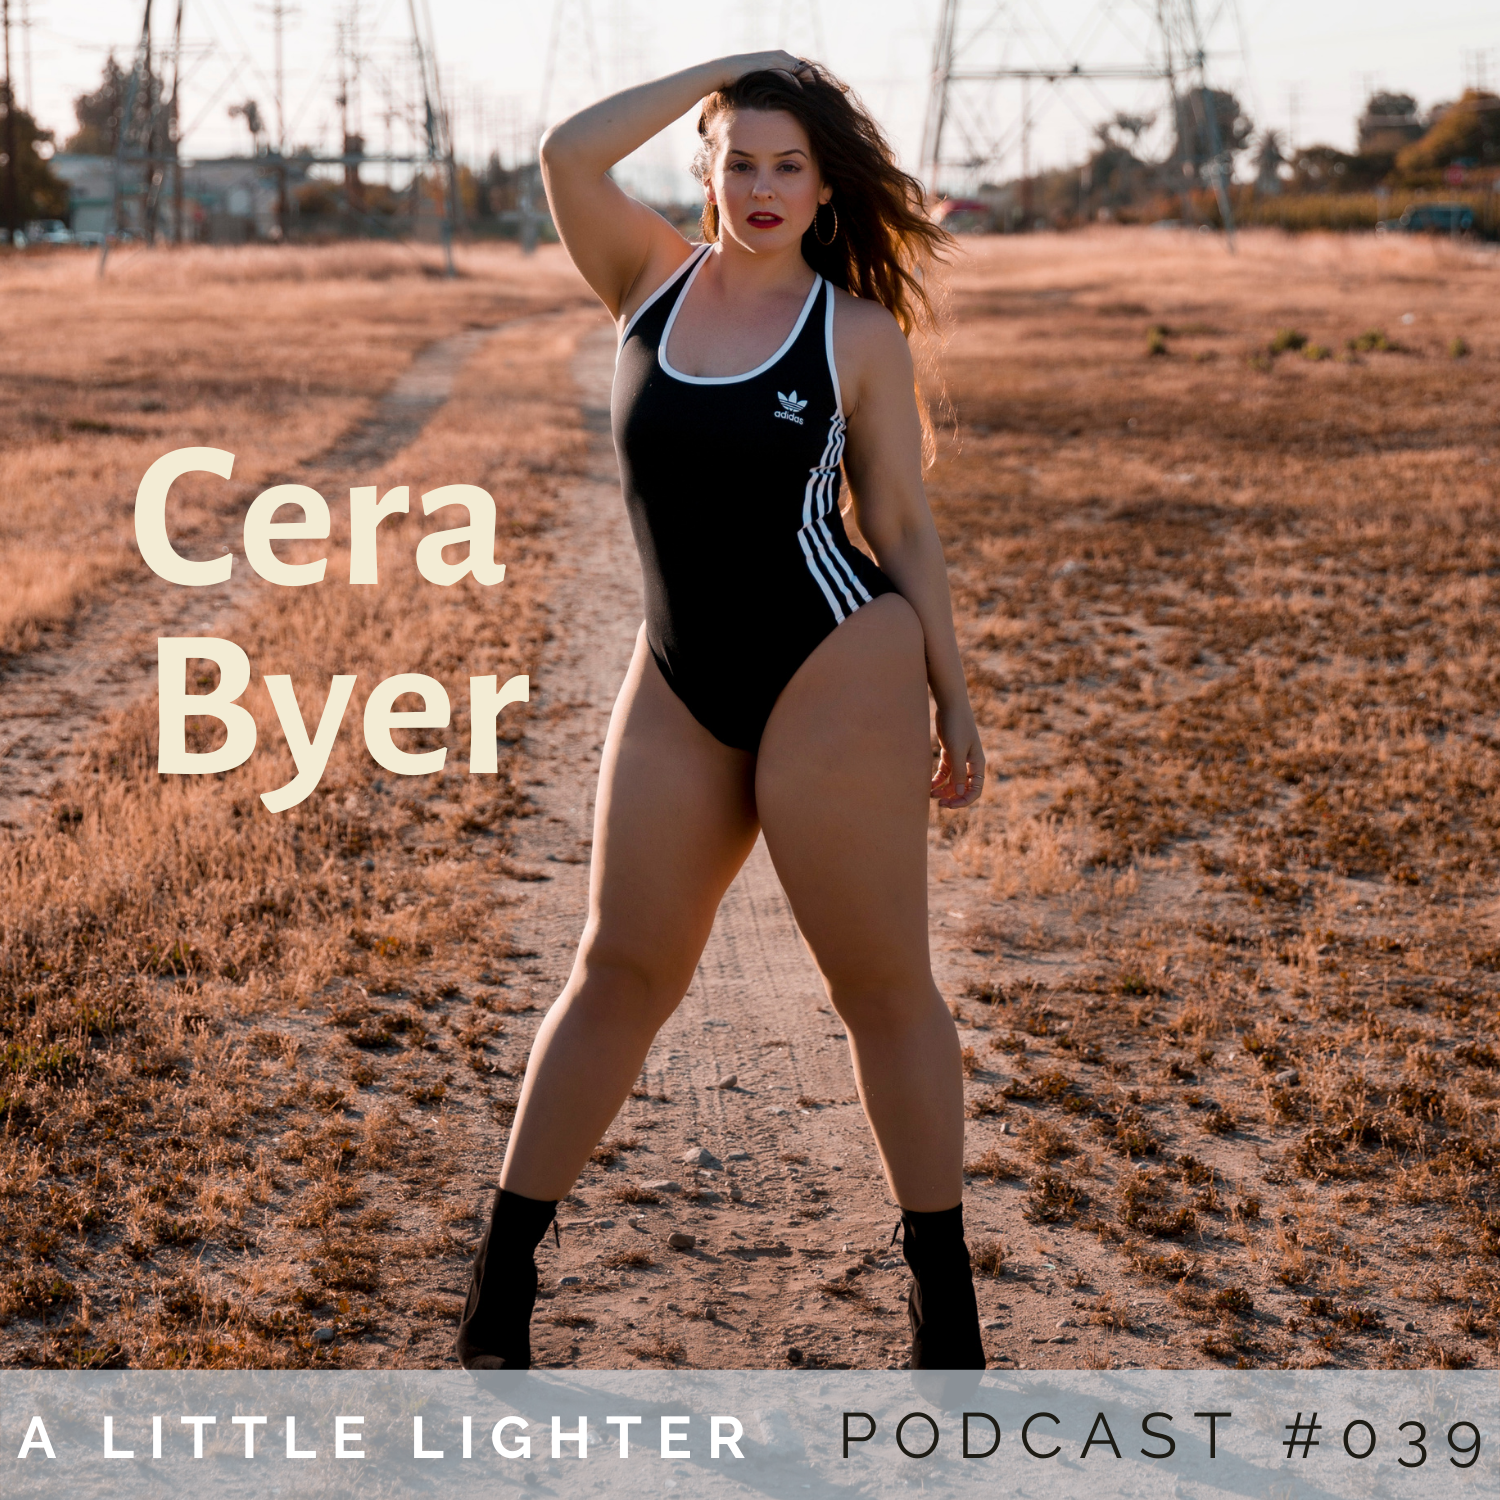 Belly Dance Podcast cera byer